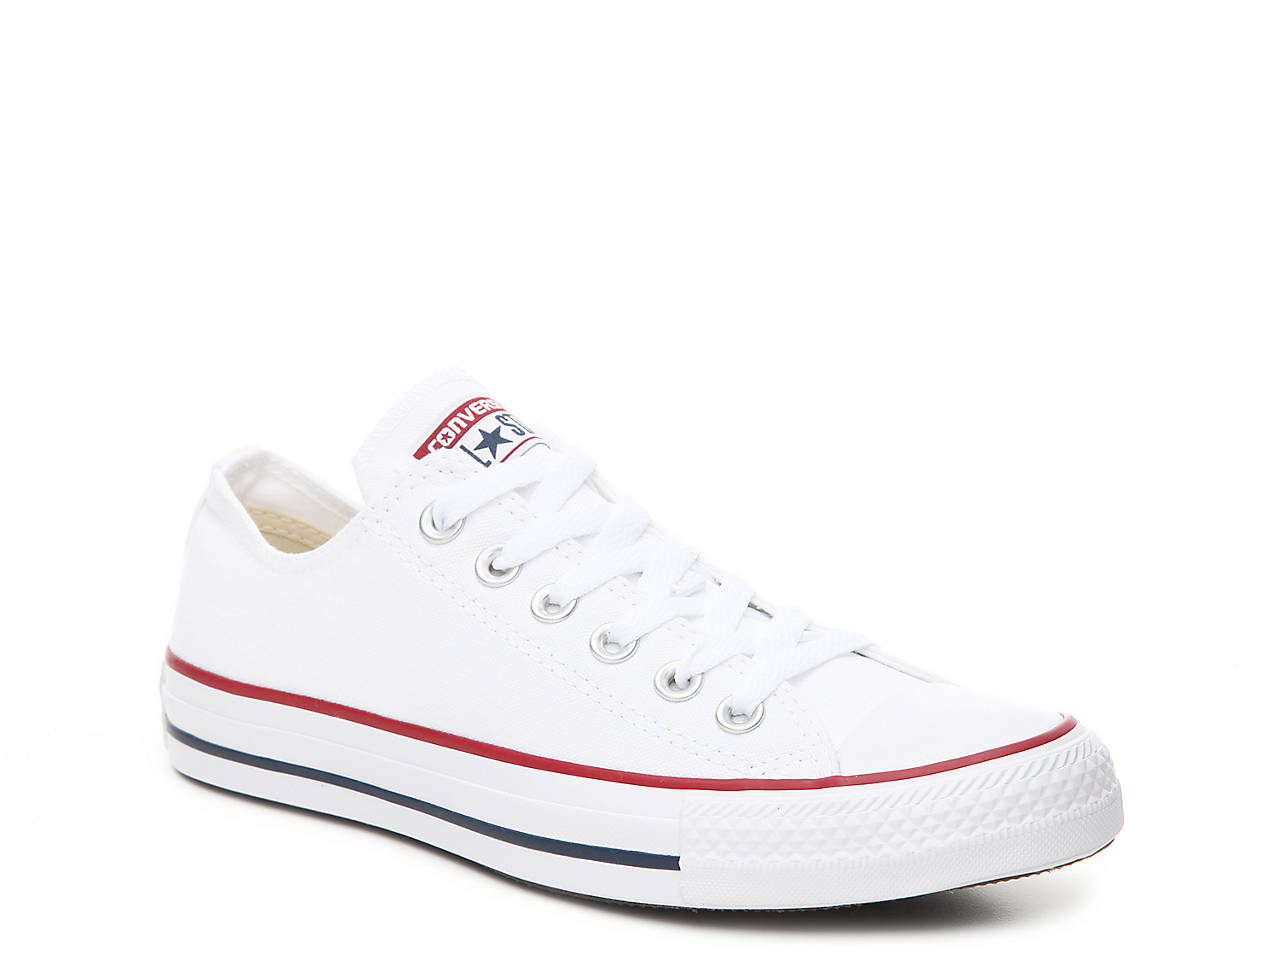 72d9414b220 Converse Chuck Taylor All Star Sneaker - Women s Women s Shoes